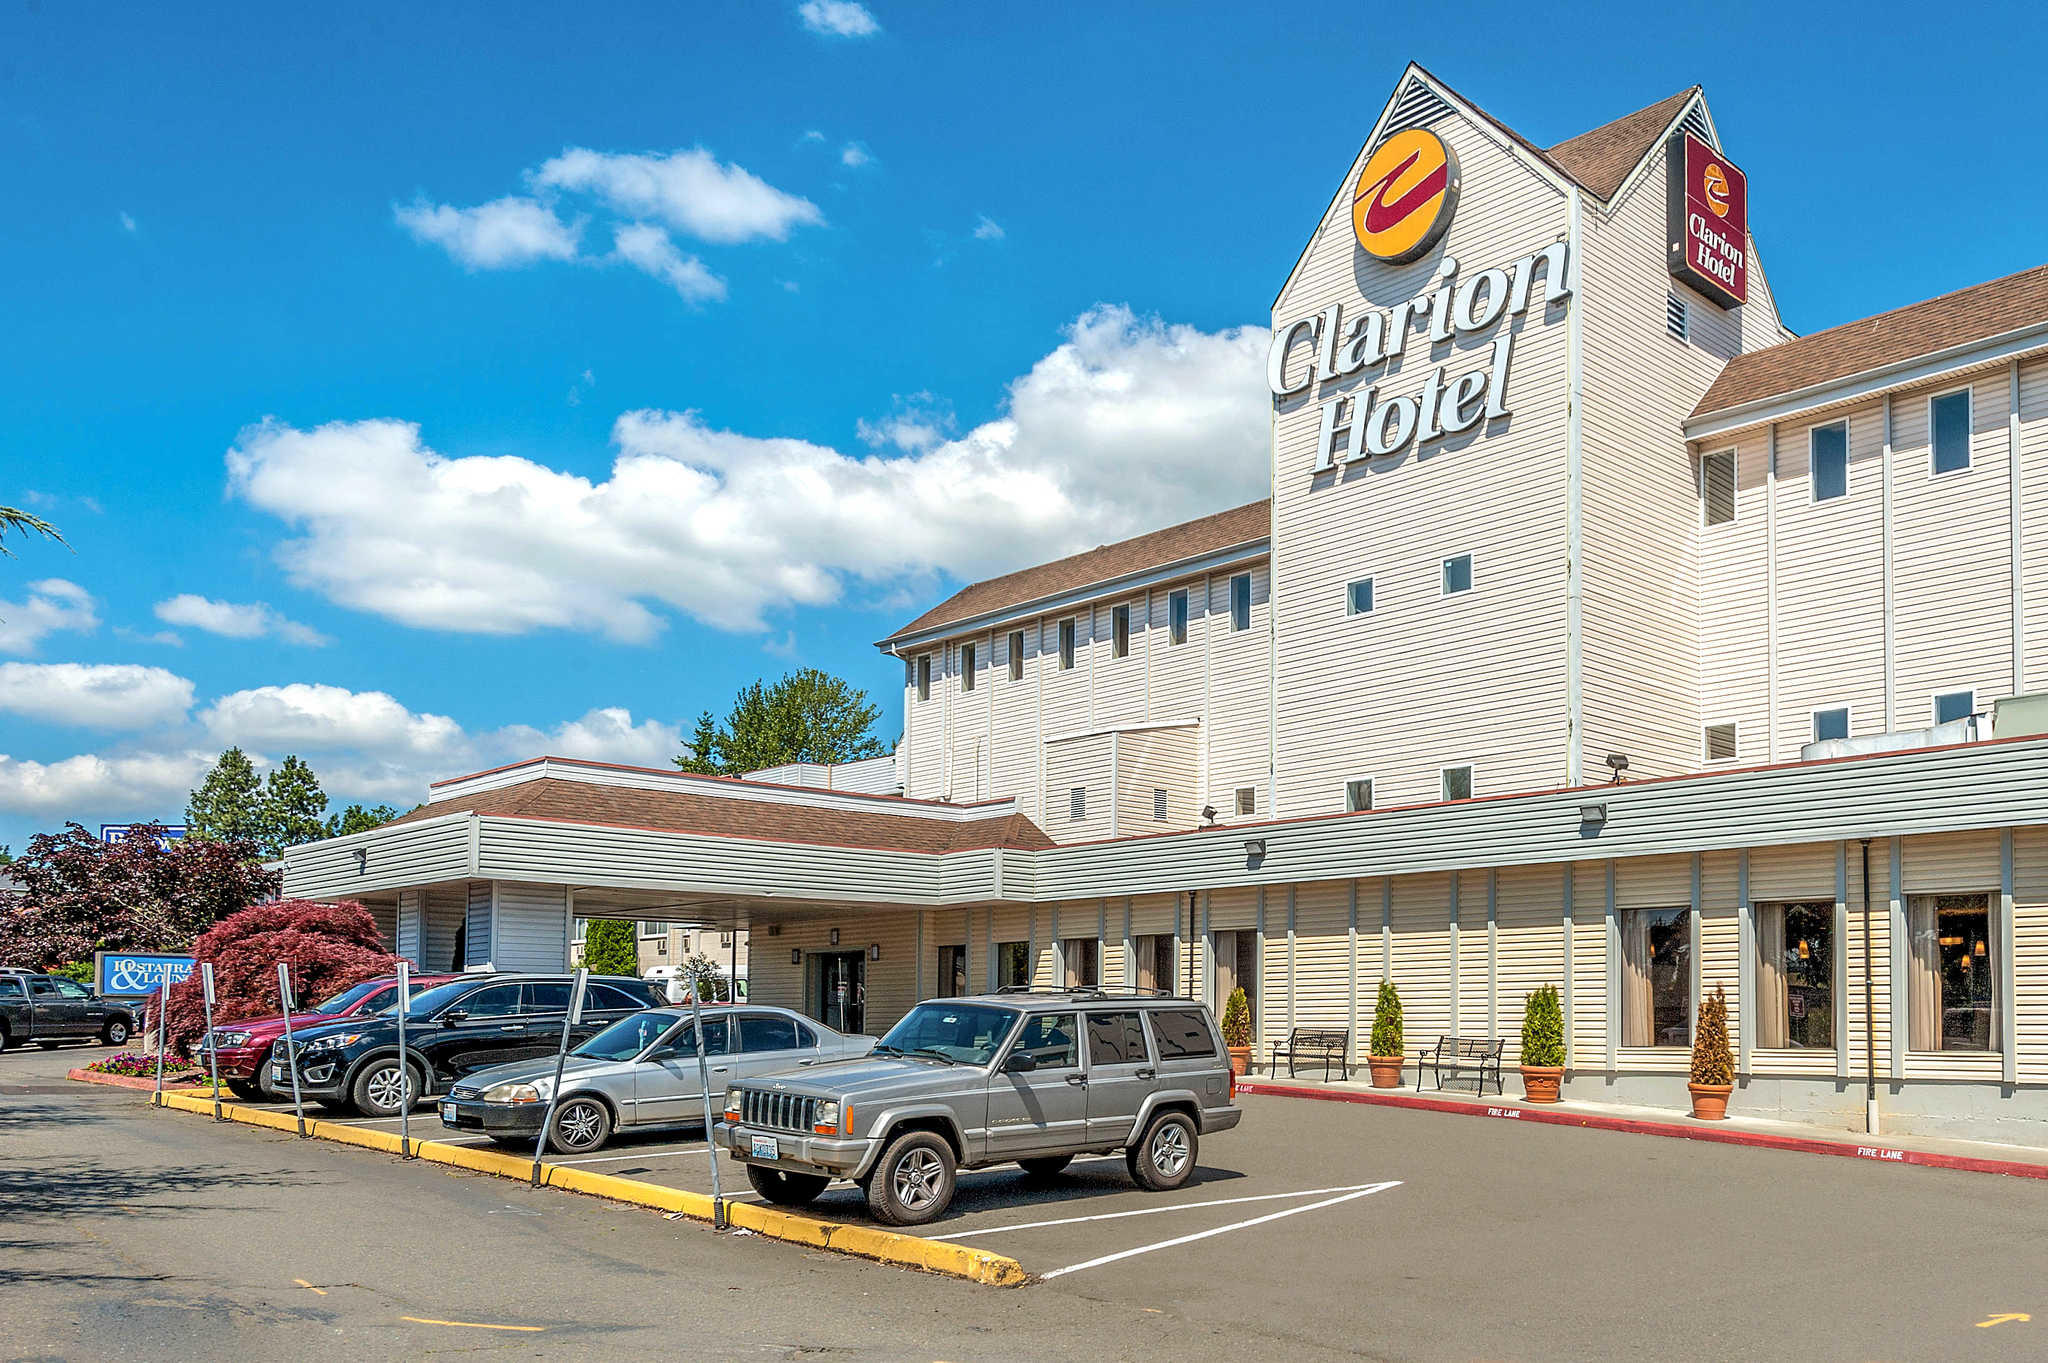 Clarion Hotel Seattle Airport image 3